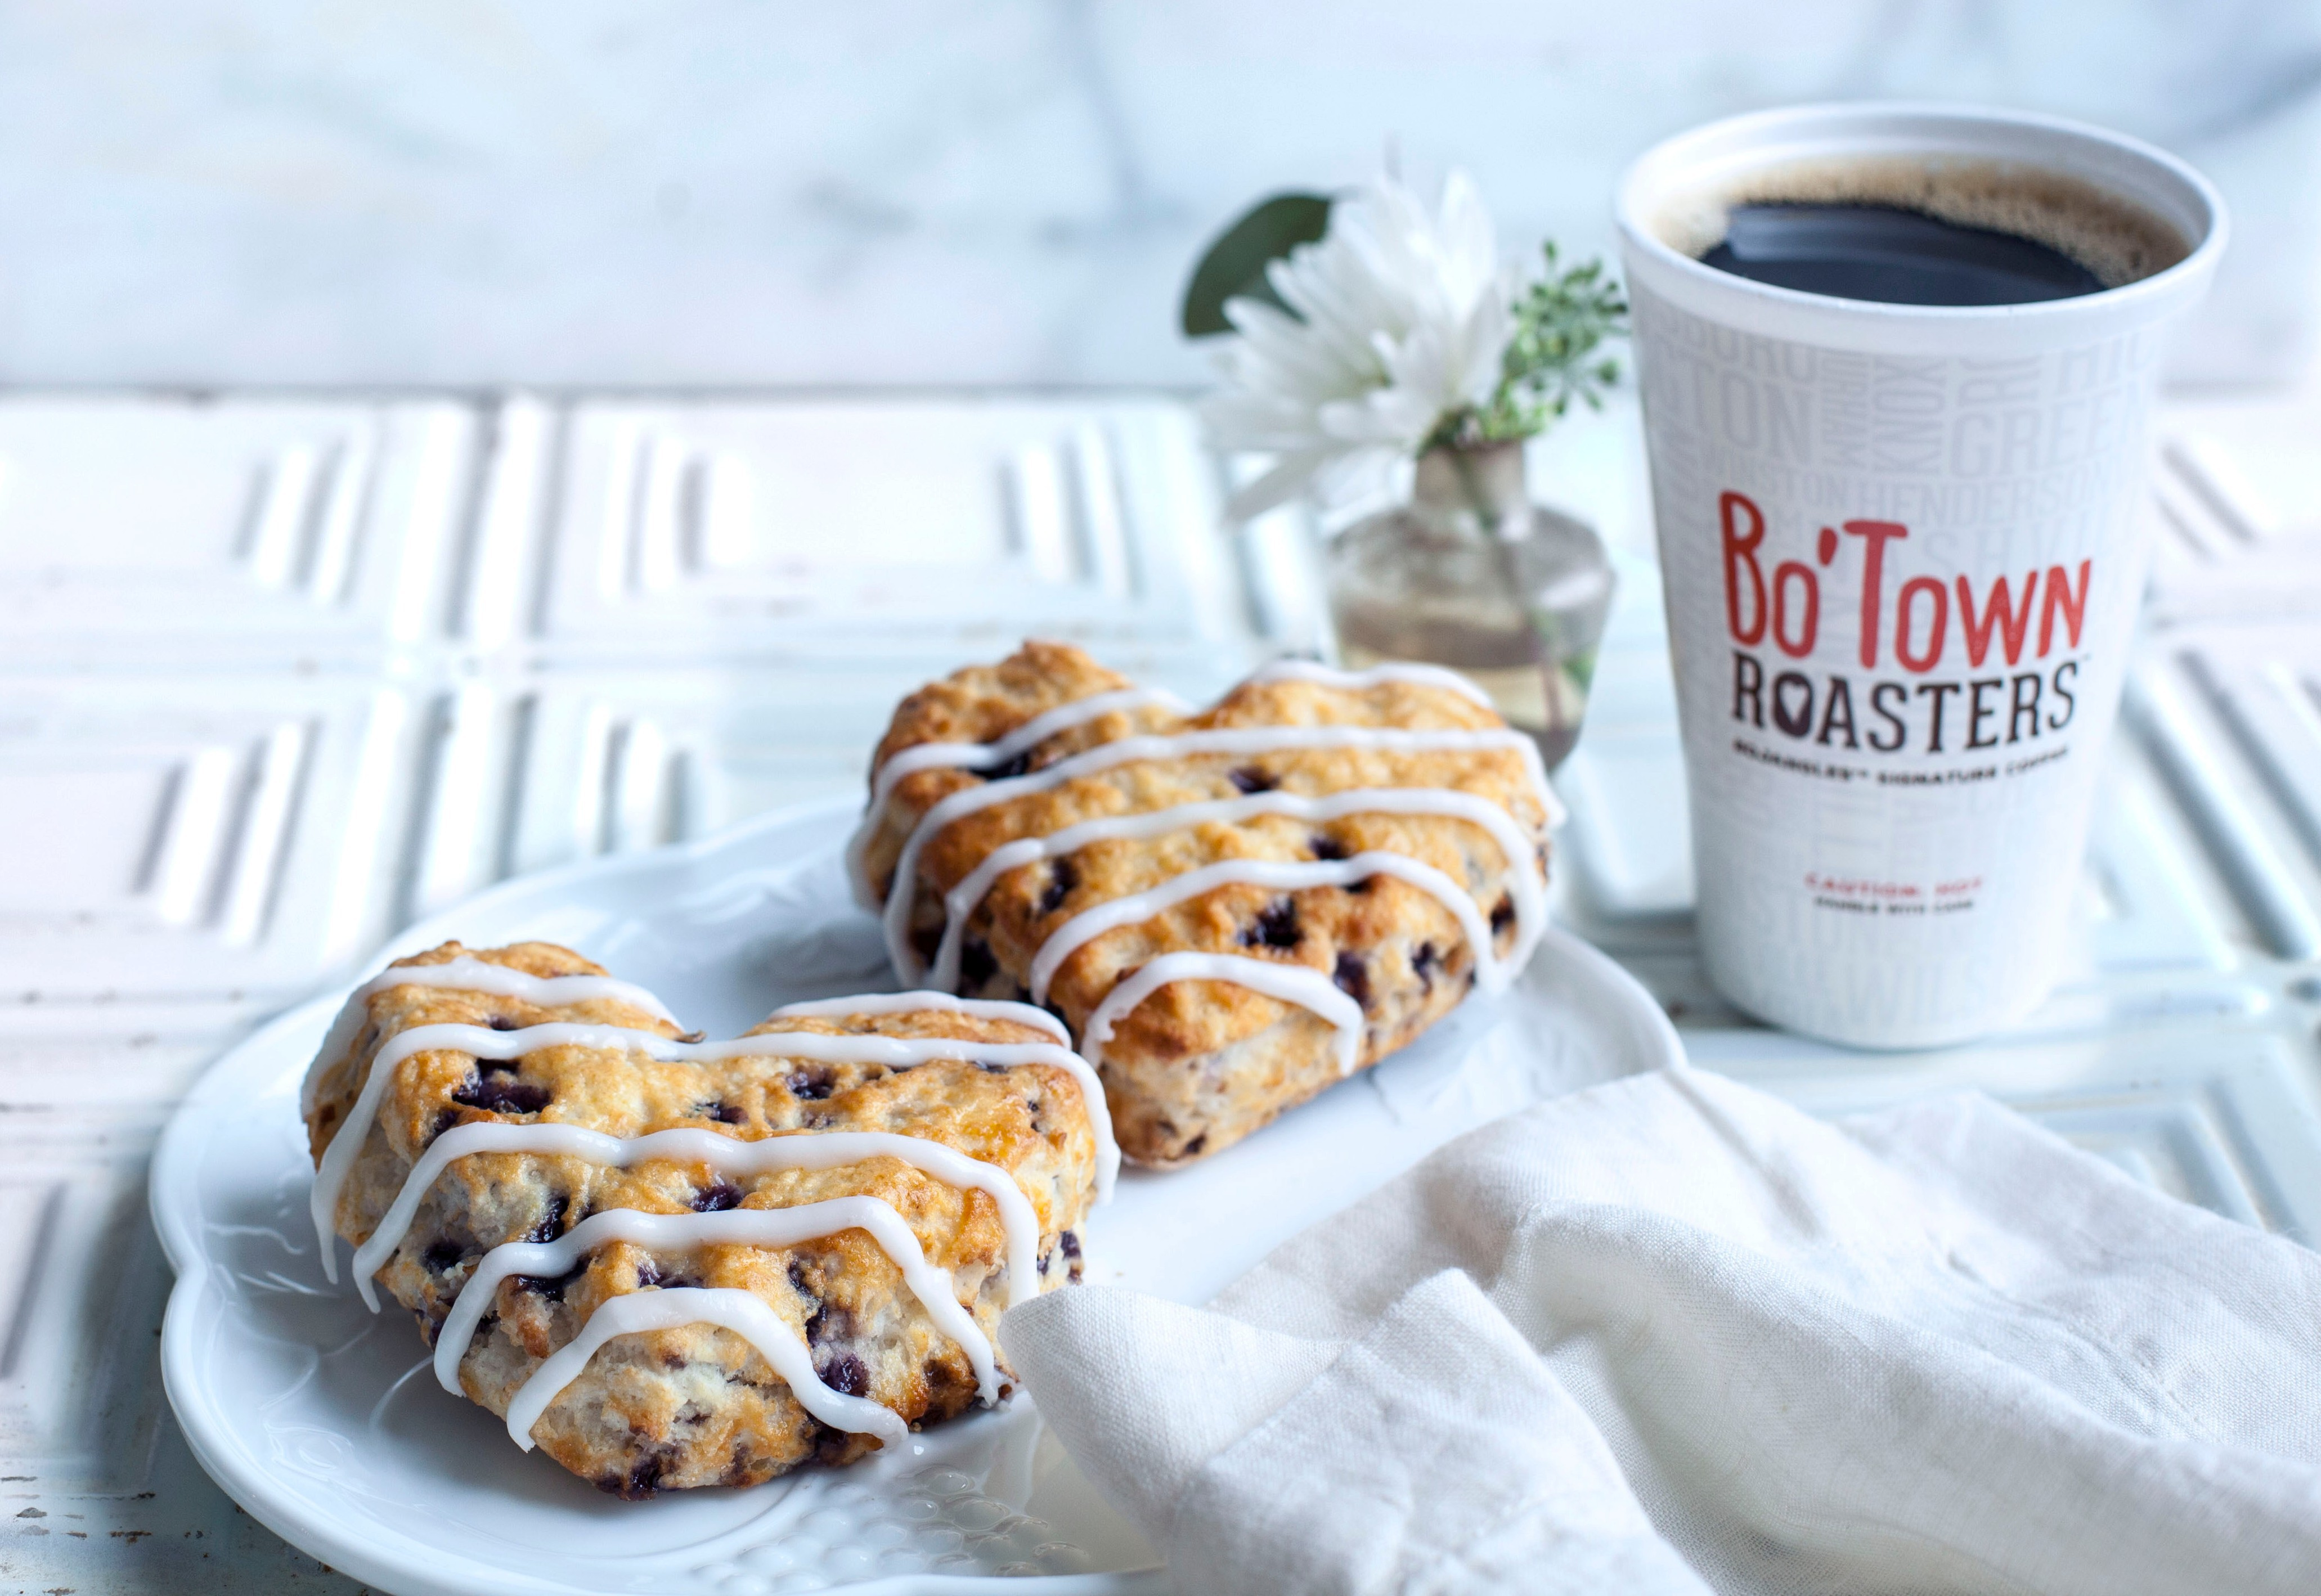 Bojangles' Heart-Shaped Bo-Berry Biscuits are the perfect sweet treat this Valentine's Day. (Photo: Bojangles')